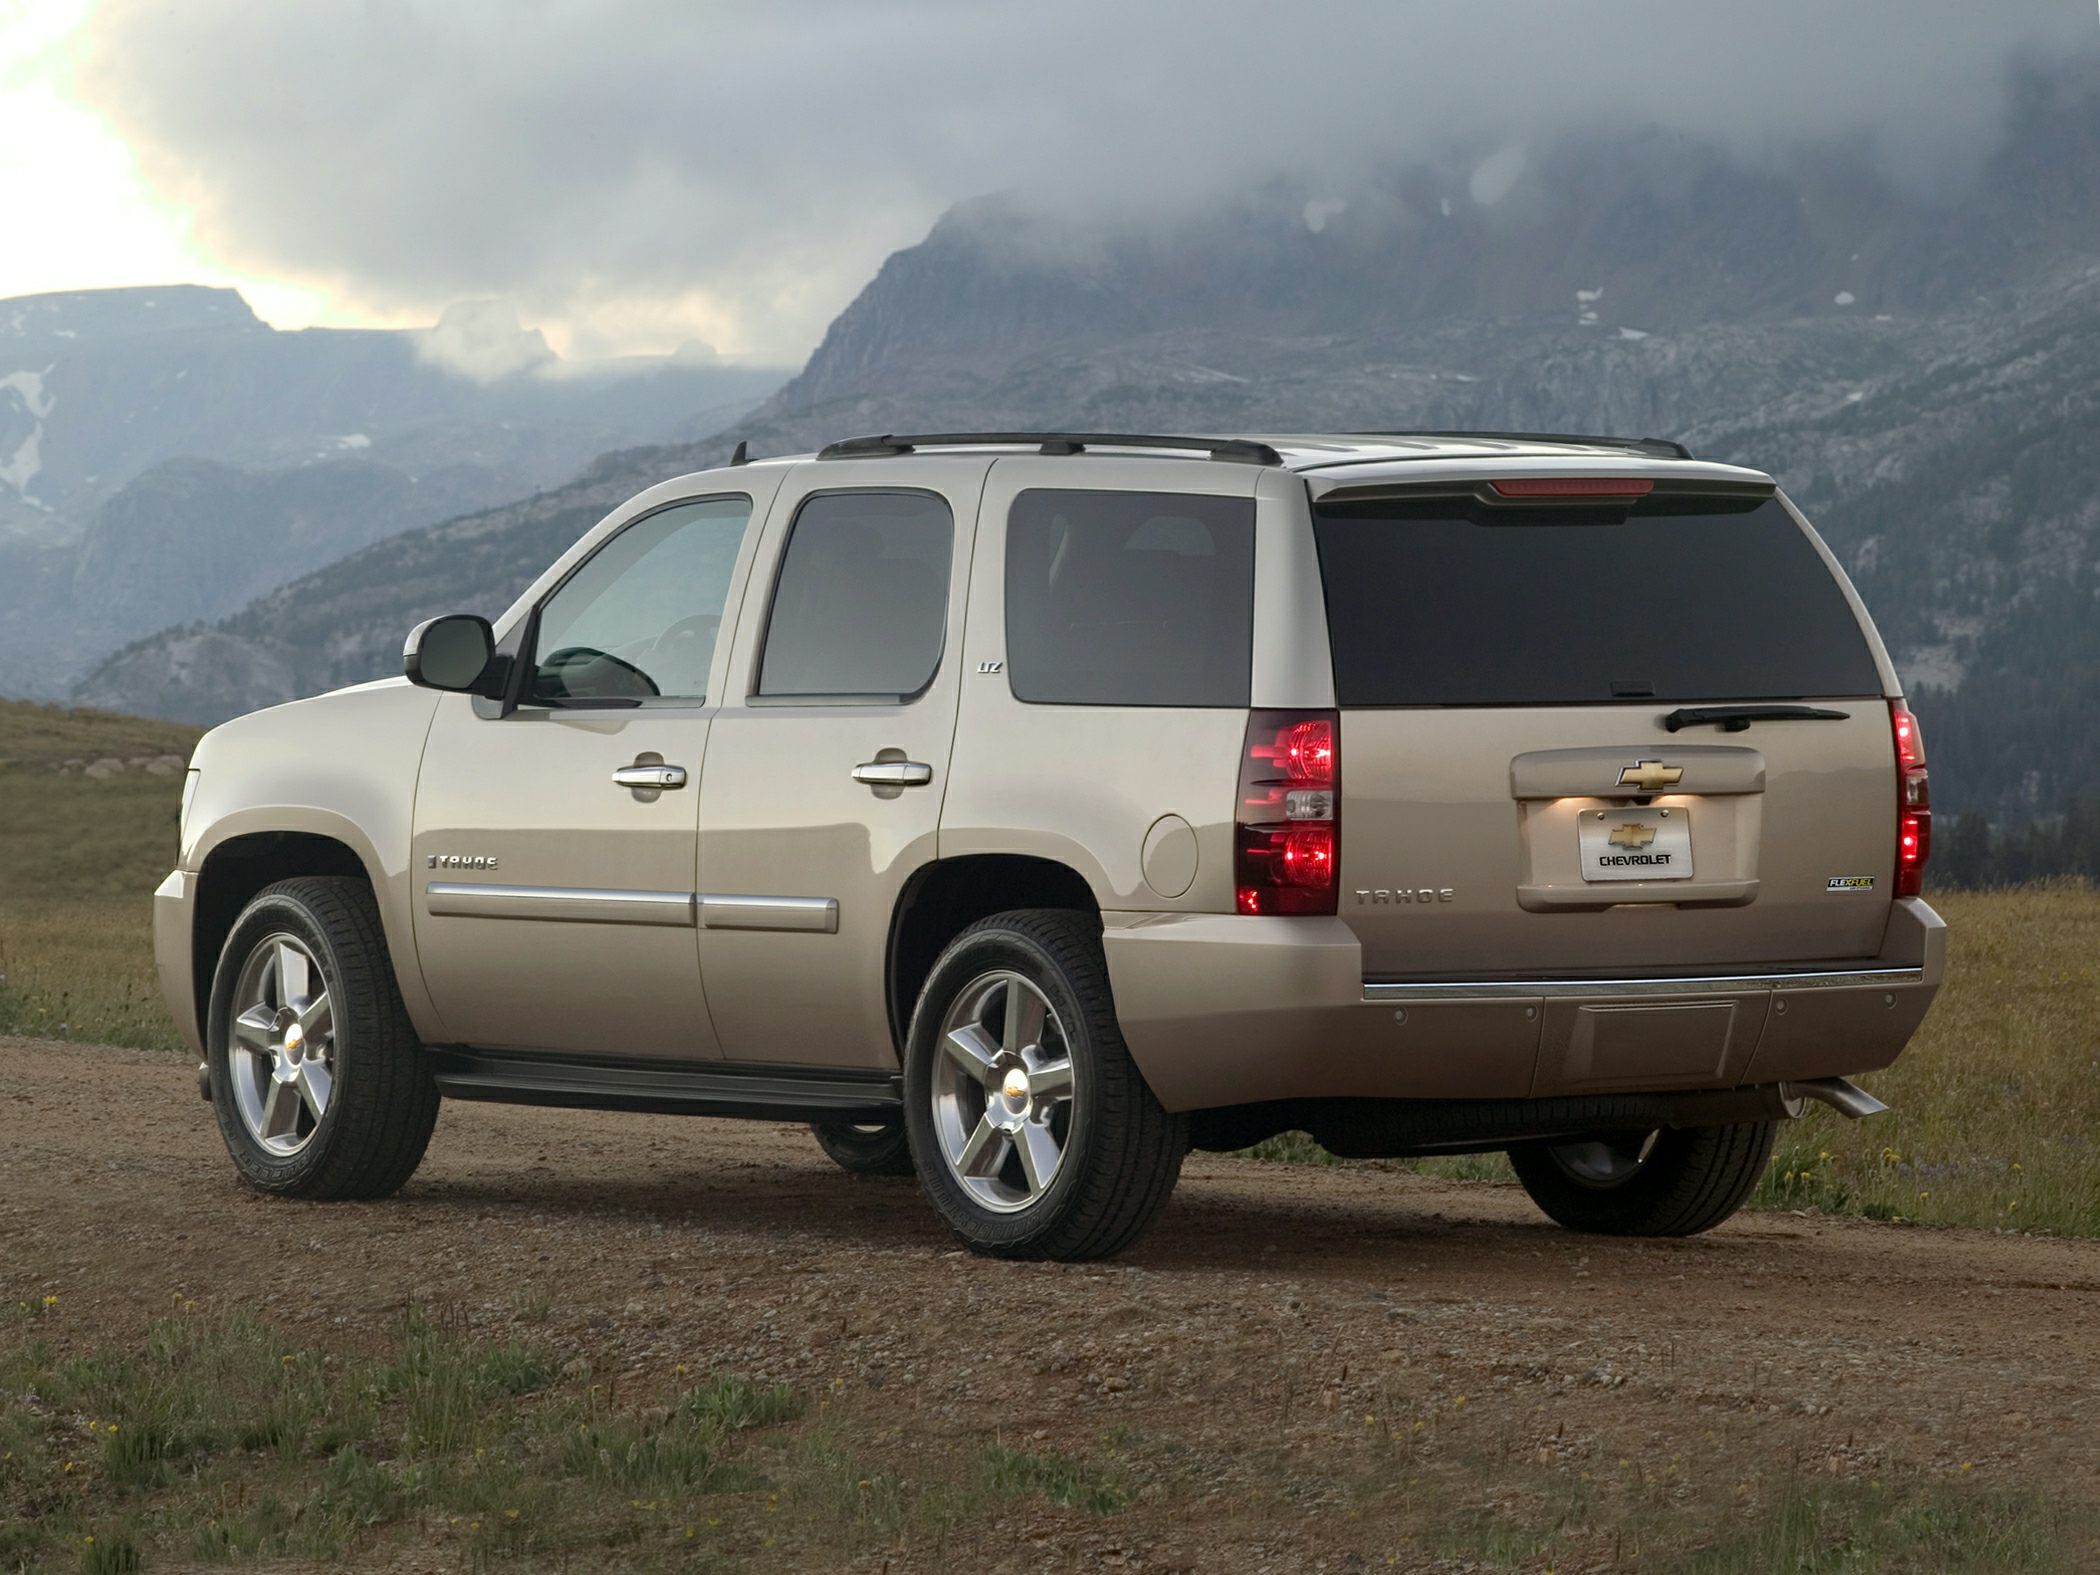 burlington tahoe chevy sda ford chevrolet jersey exterior vs new expedition